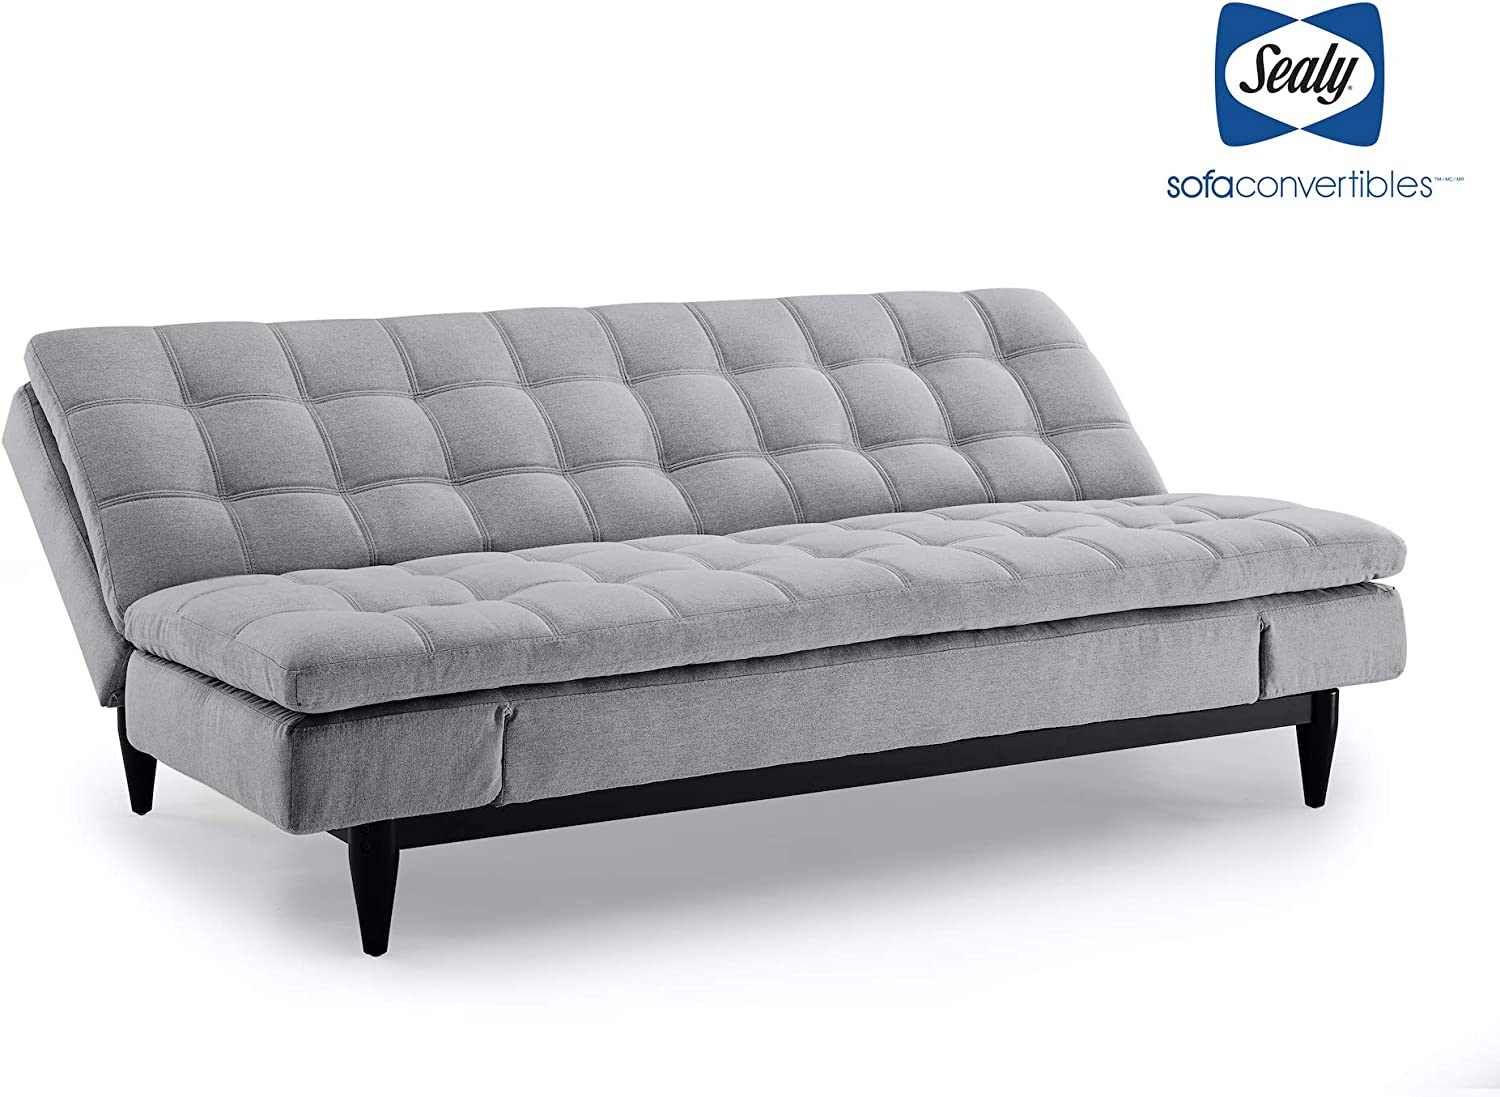 - Montreal Sofa Convertible By Sealy: Amazon.ca: Home & Kitchen